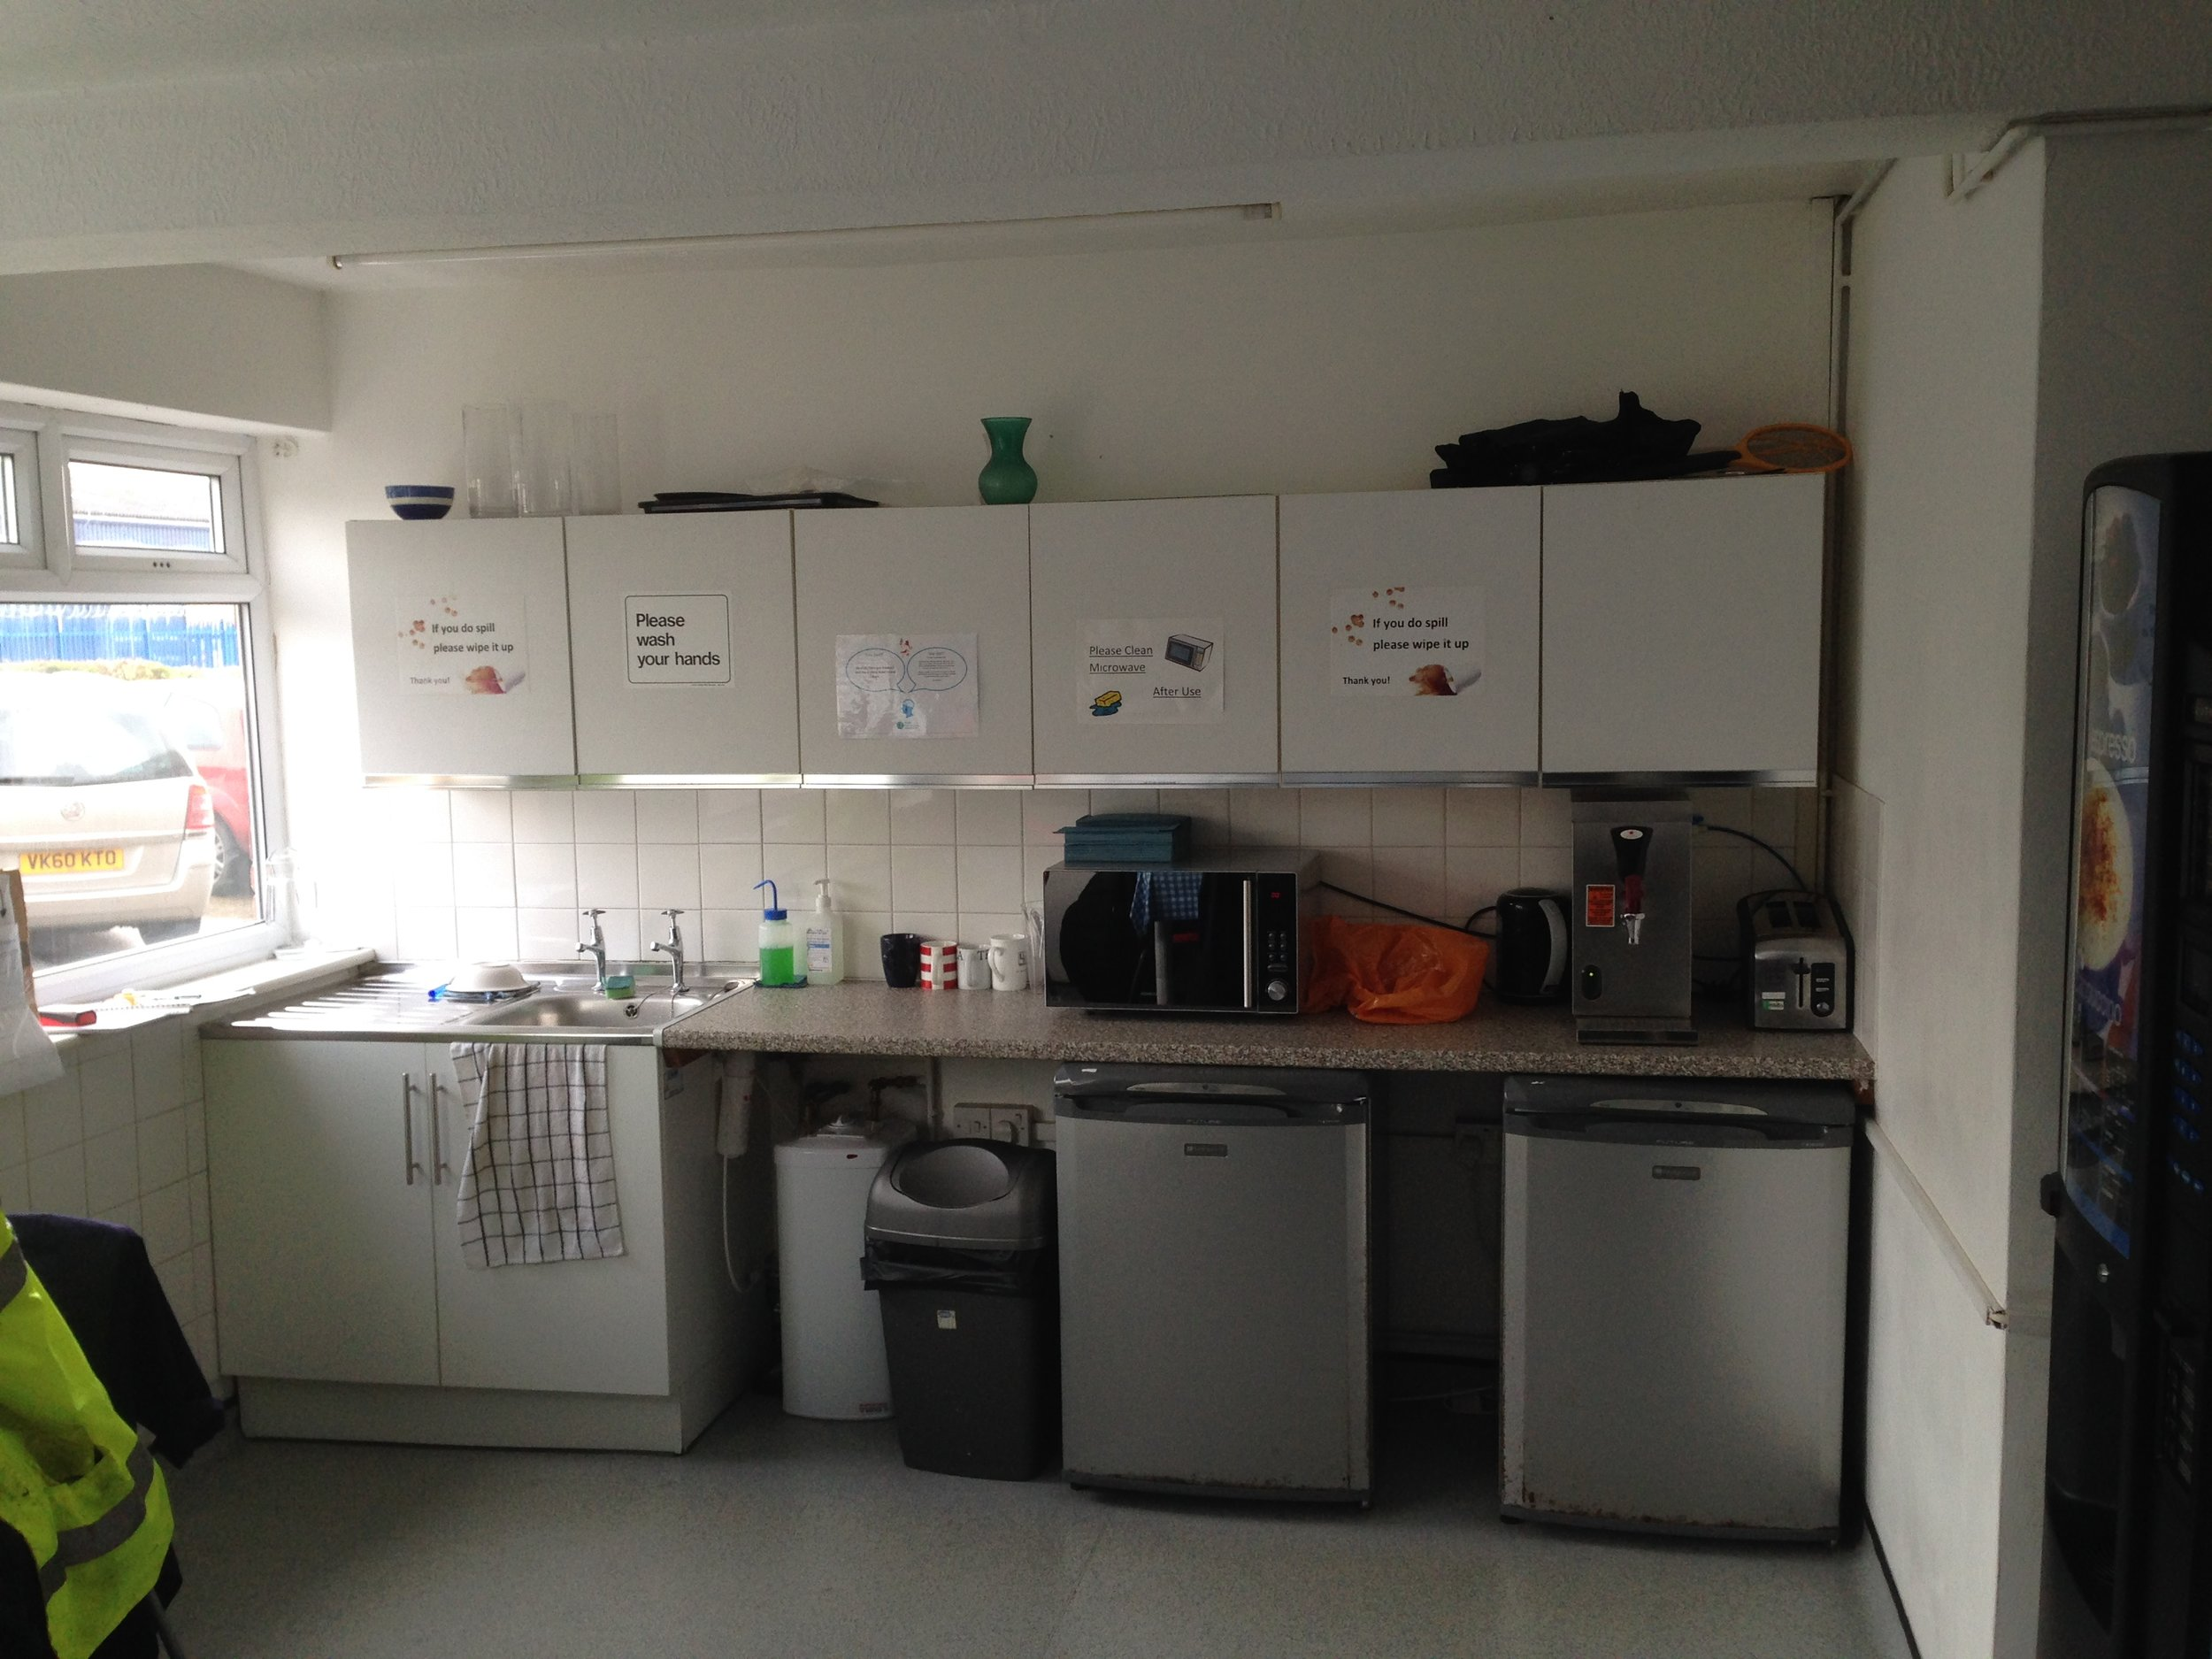 Office remodelling - design and refit - Littlehampton manufacturing sector-19